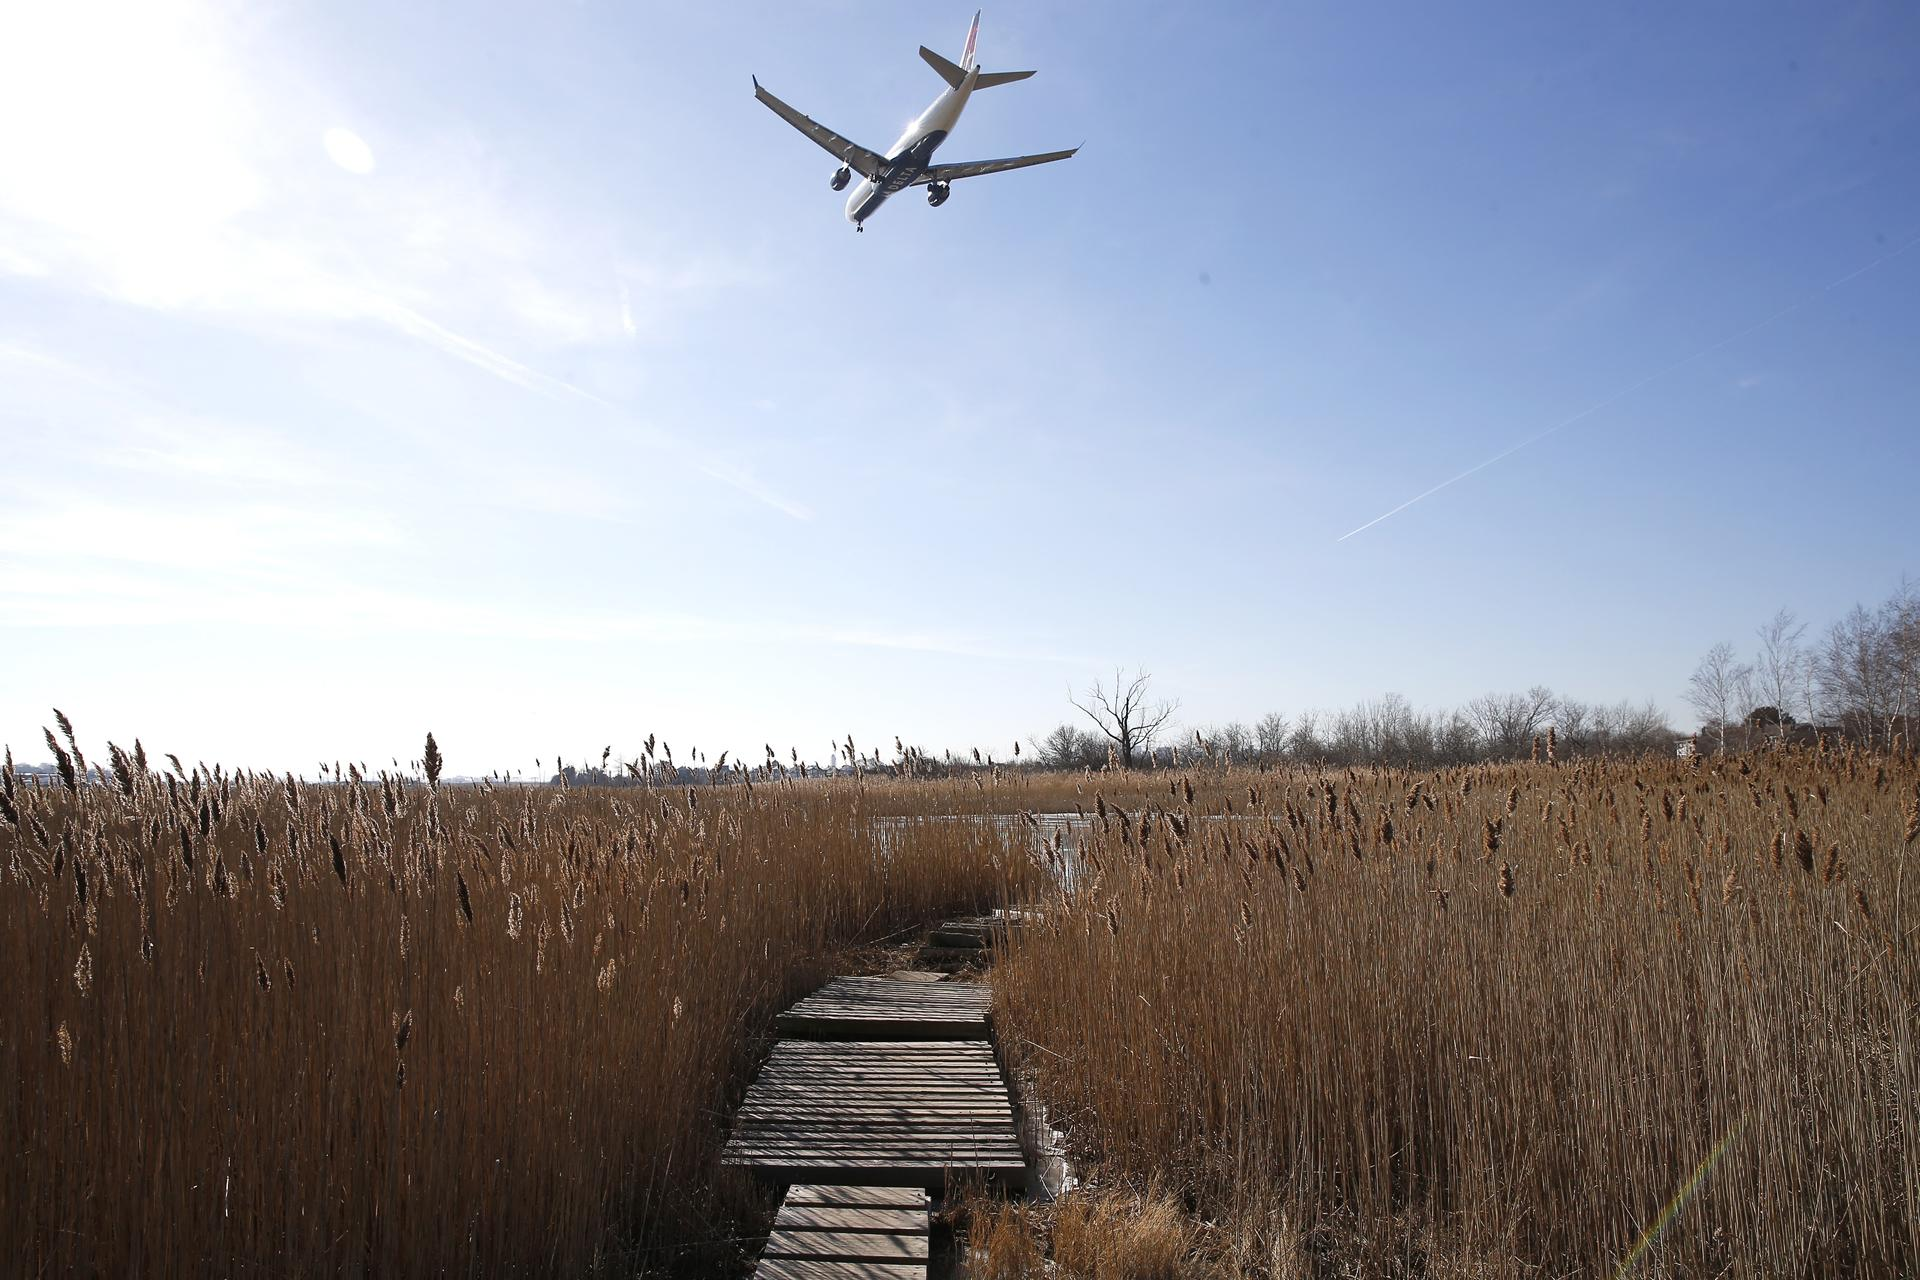 Planes frequent the skies over Belle Isle Marsh in East Boston.